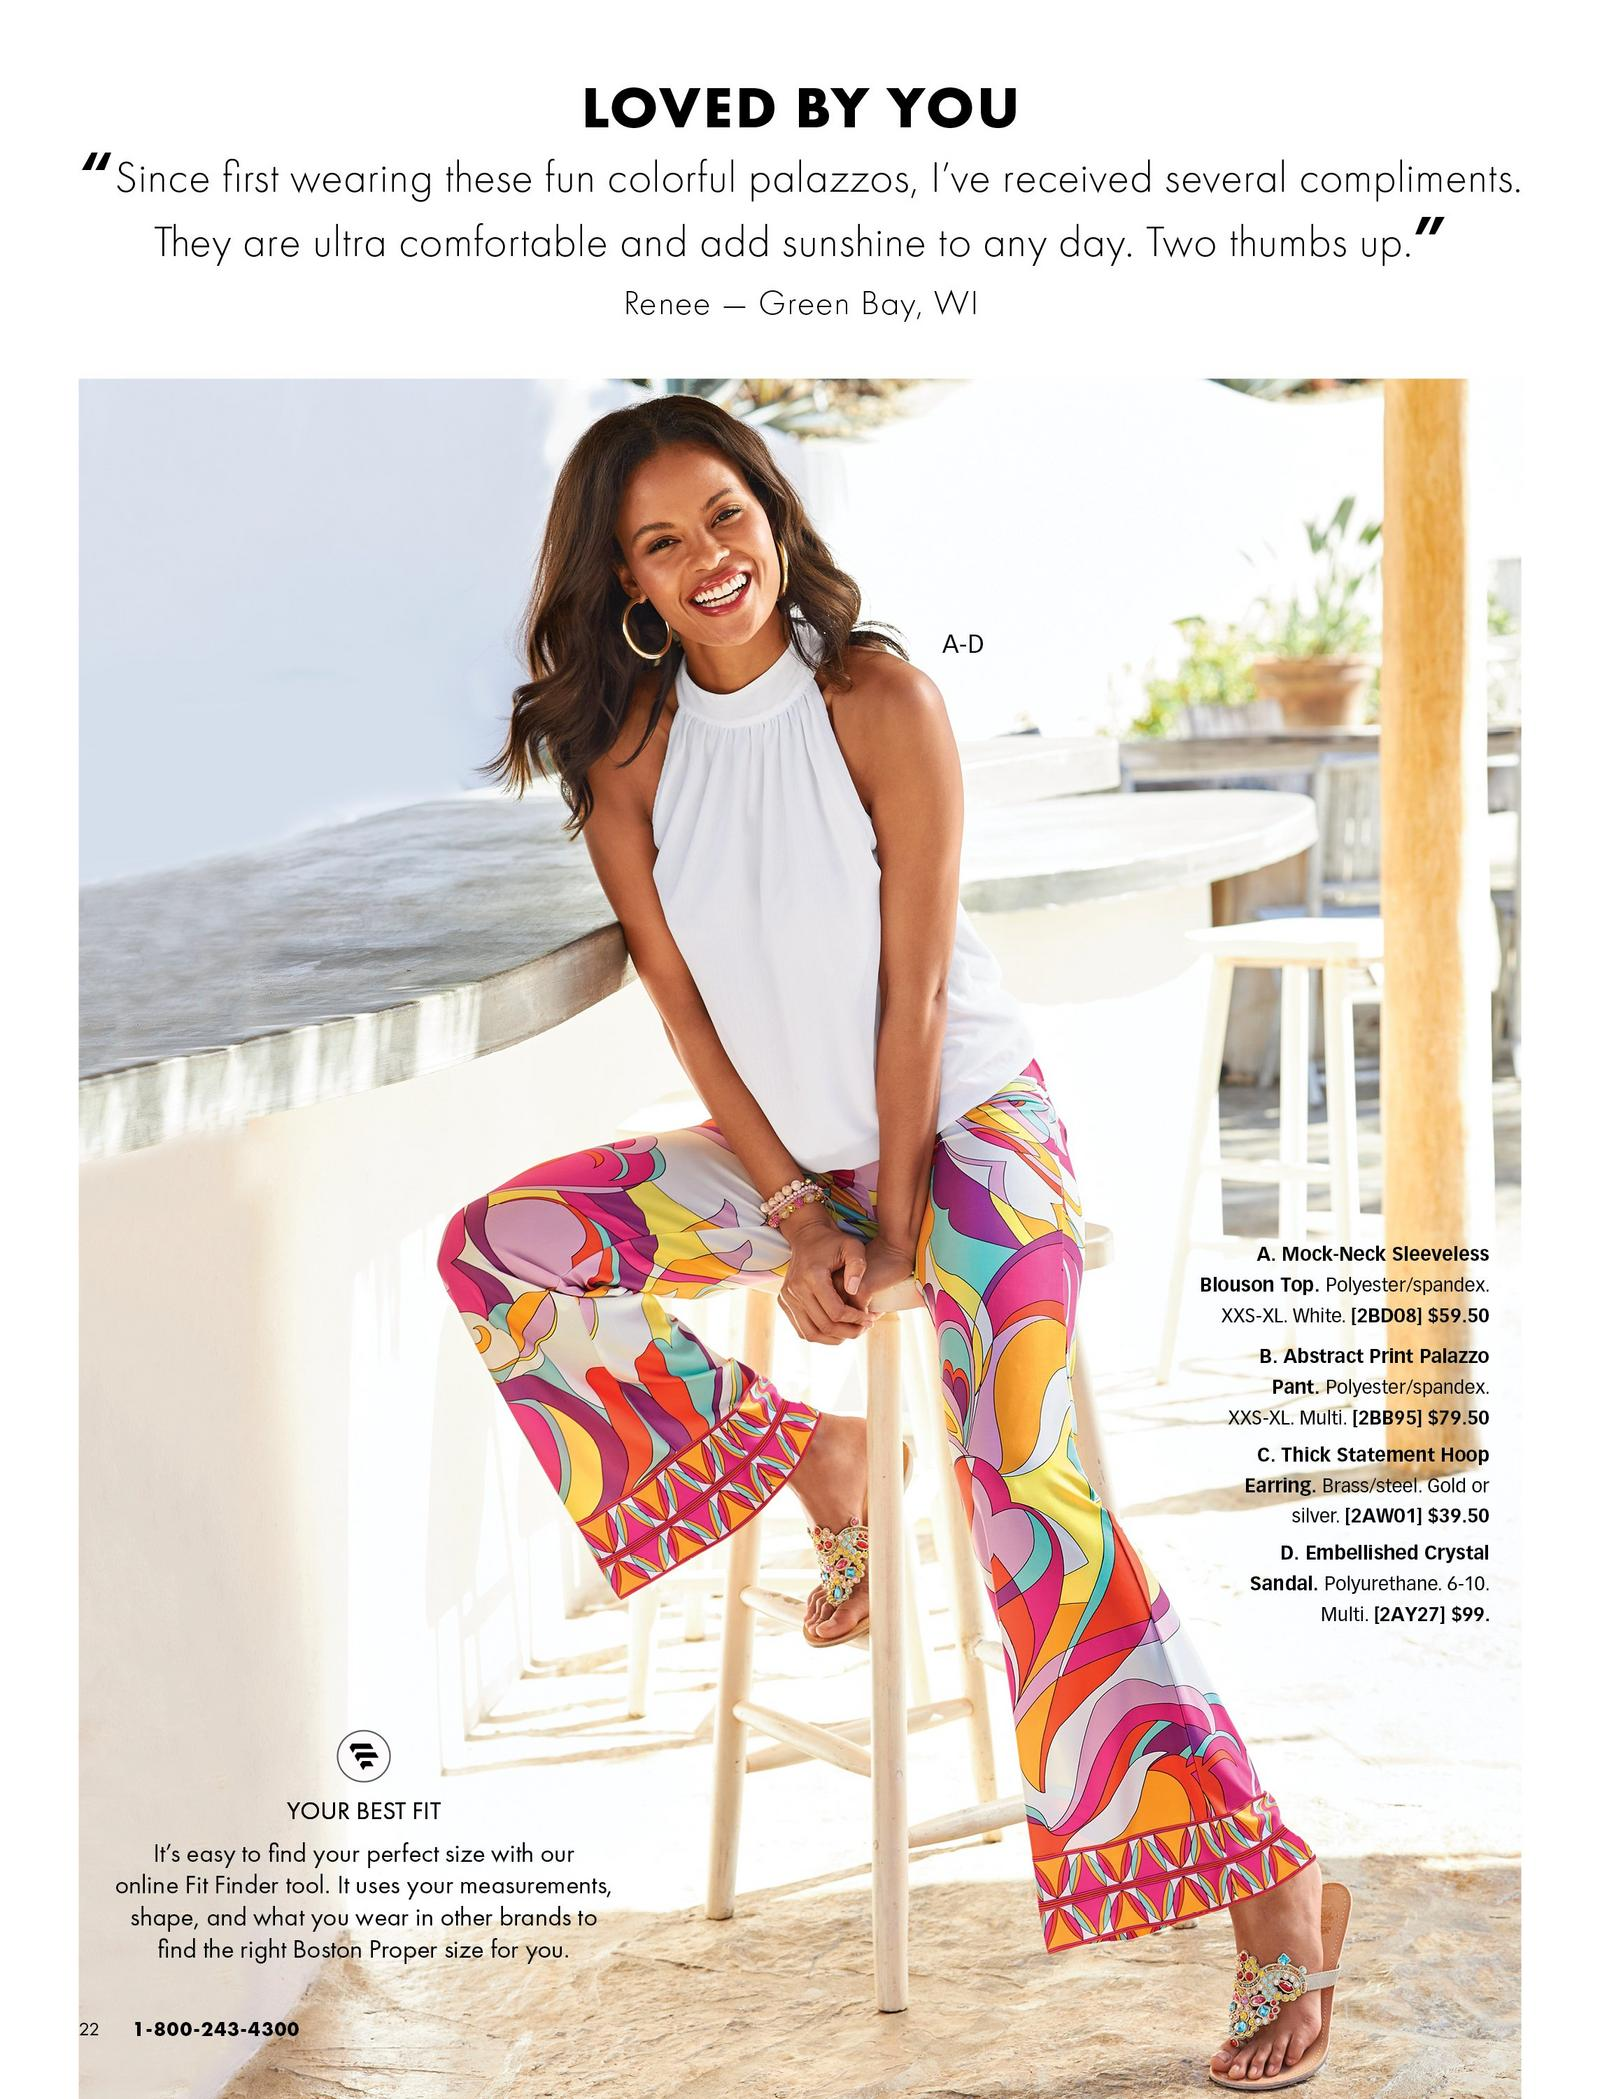 model wearing a white high-neck blouson sleeveless top, paisley print multicolored palazzo pants, and multicolored jewel sandals.